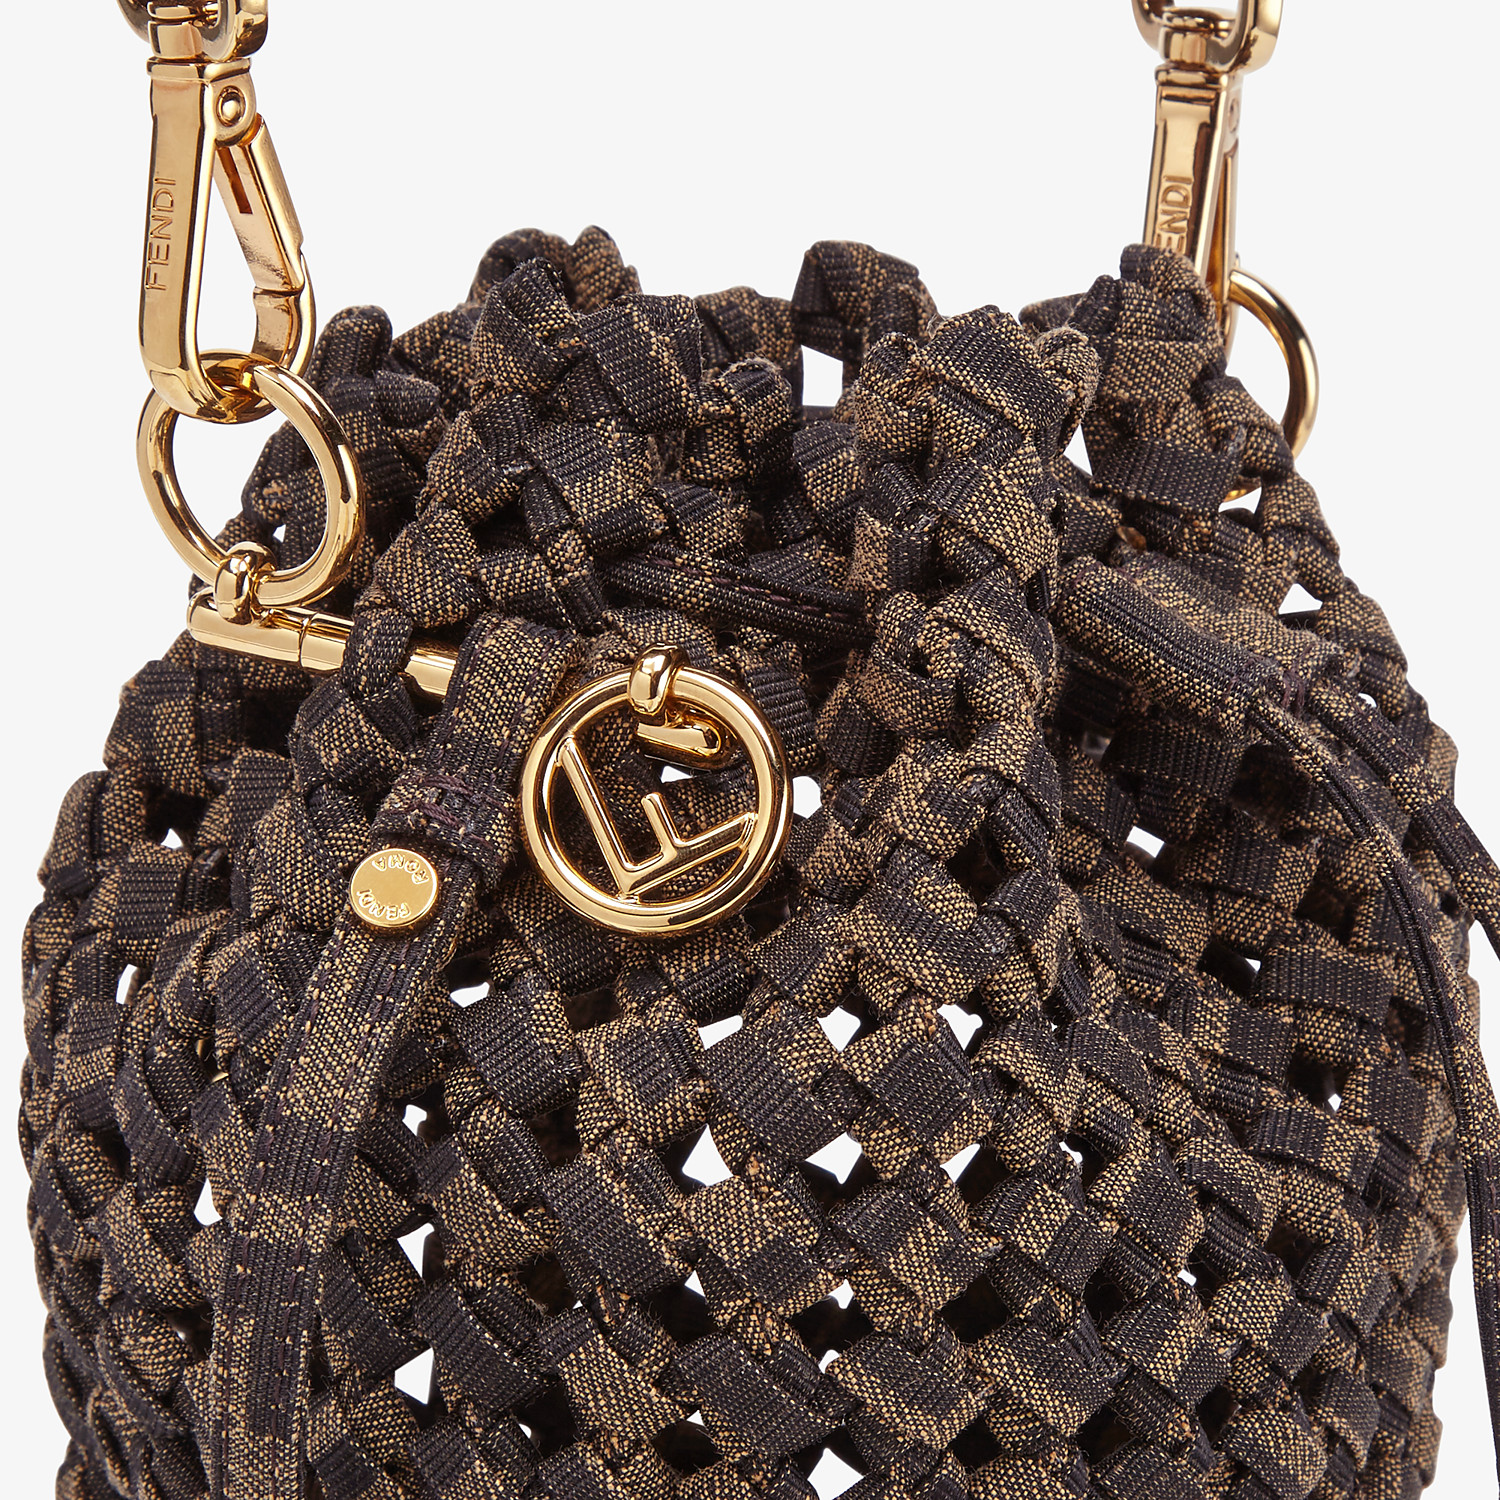 FENDI MON TRESOR - Jacquard fabric interlace mini-bag - view 6 detail